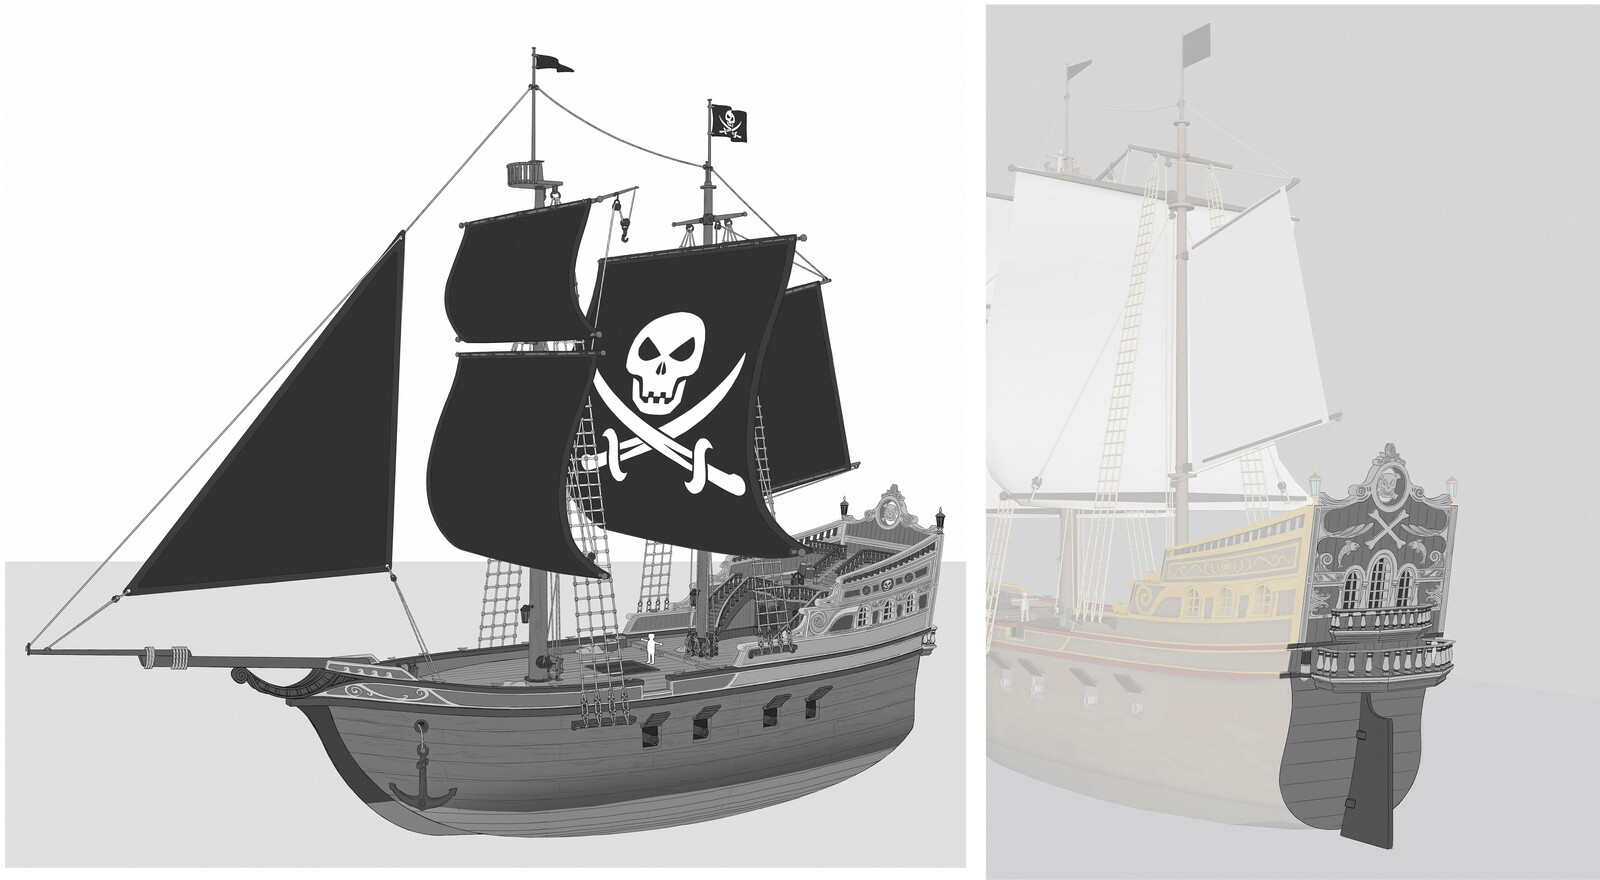 Design for the Pirate ship. I had to simplify it afterward to match more the existing toy design.